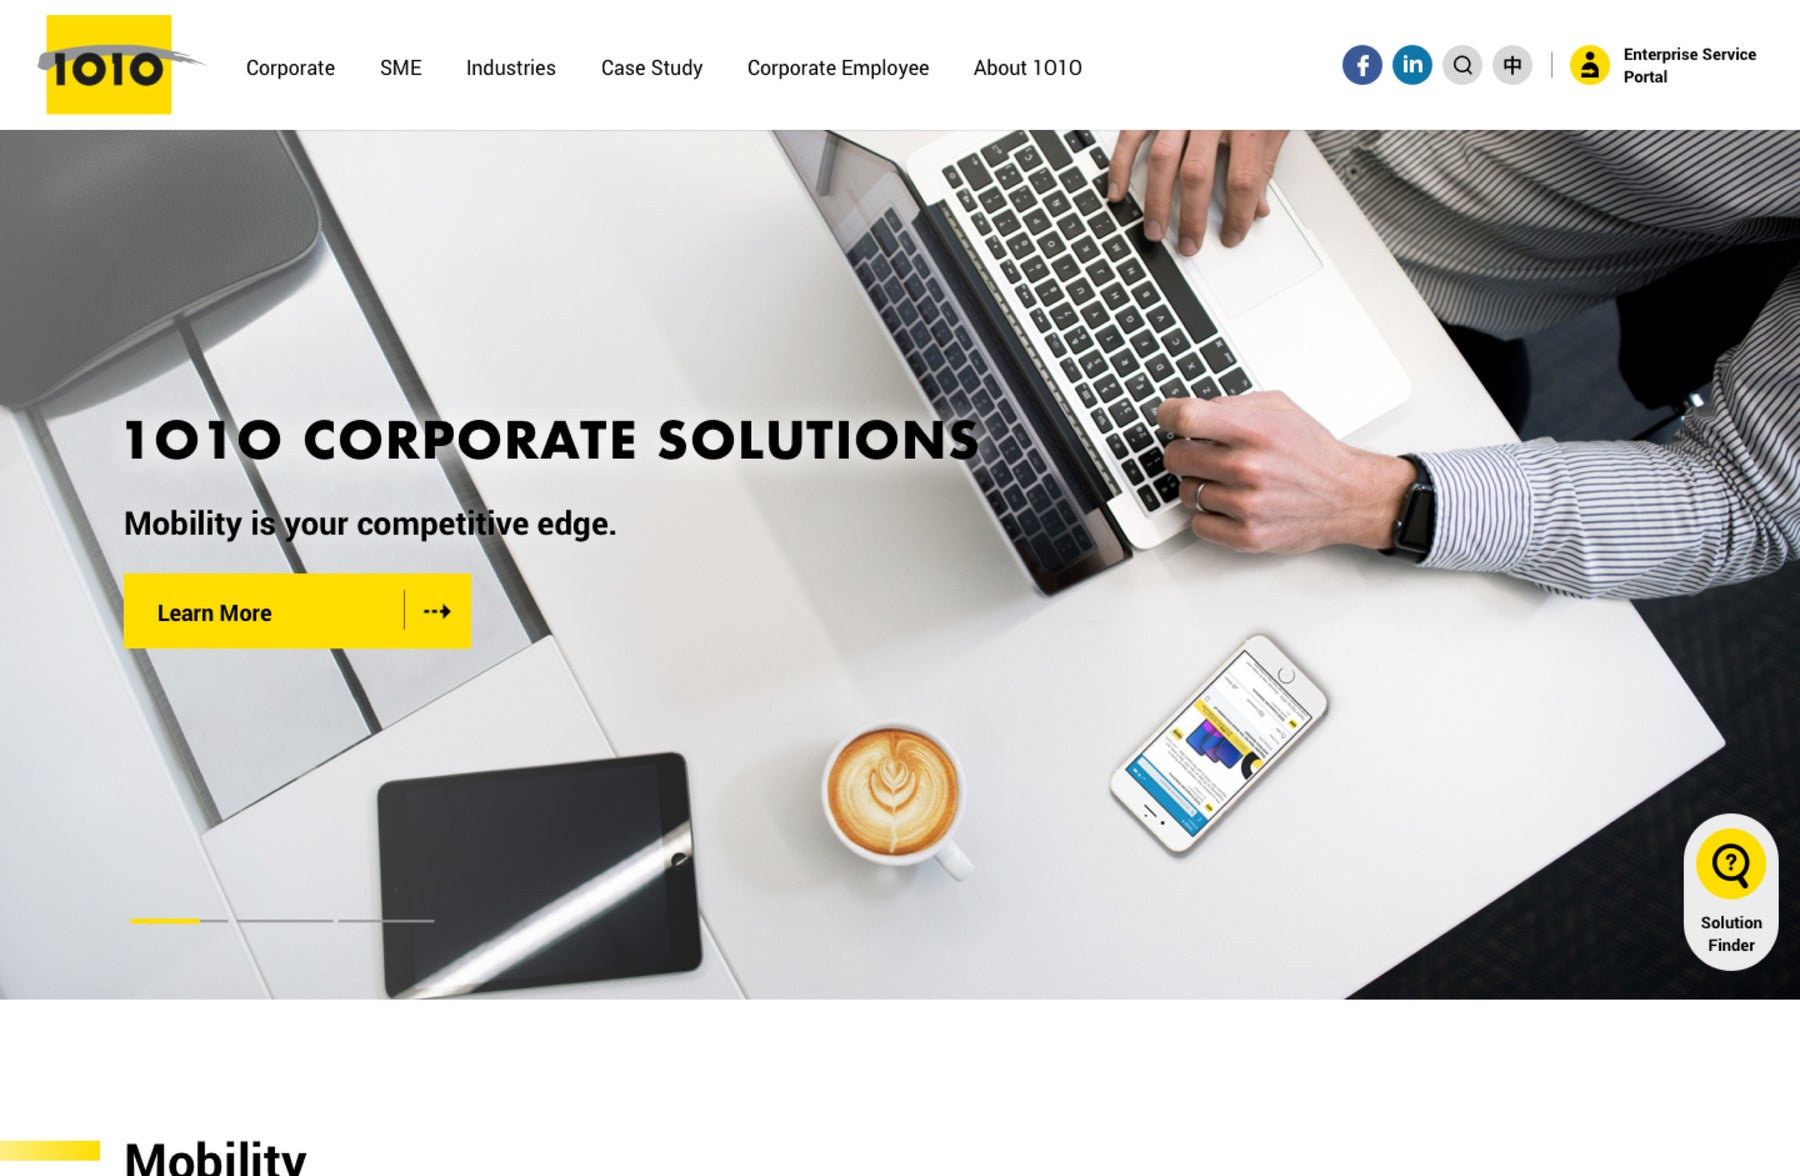 Creating a platform promoting Corporate Solutions for SME companies